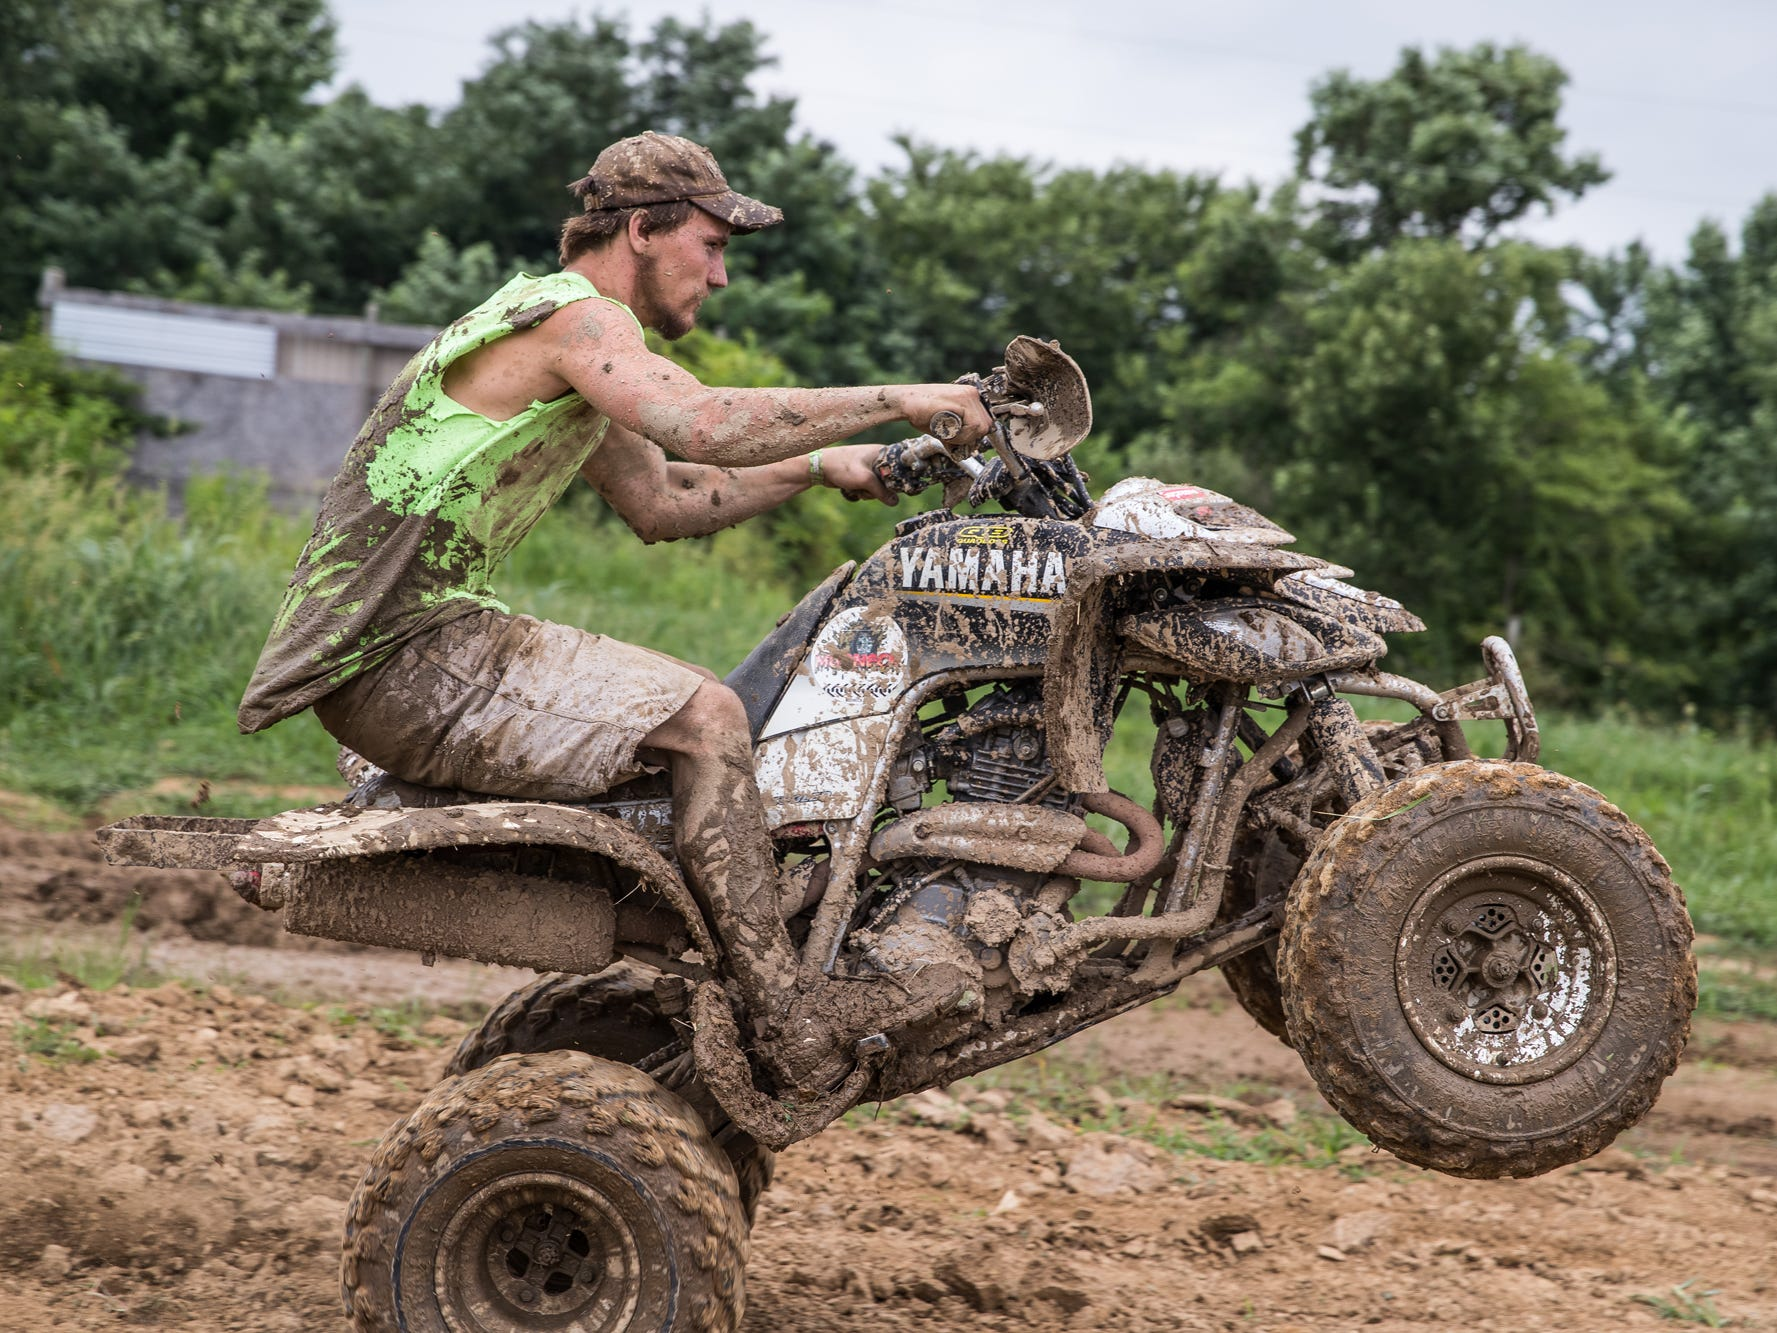 Ethan Taylor, of Middletown, Ohio, pops a wheelie on his ATV during the Redneck Rave at BlackSwan Mudpit in Medora, Ind., on Friday, July 20, 2018.